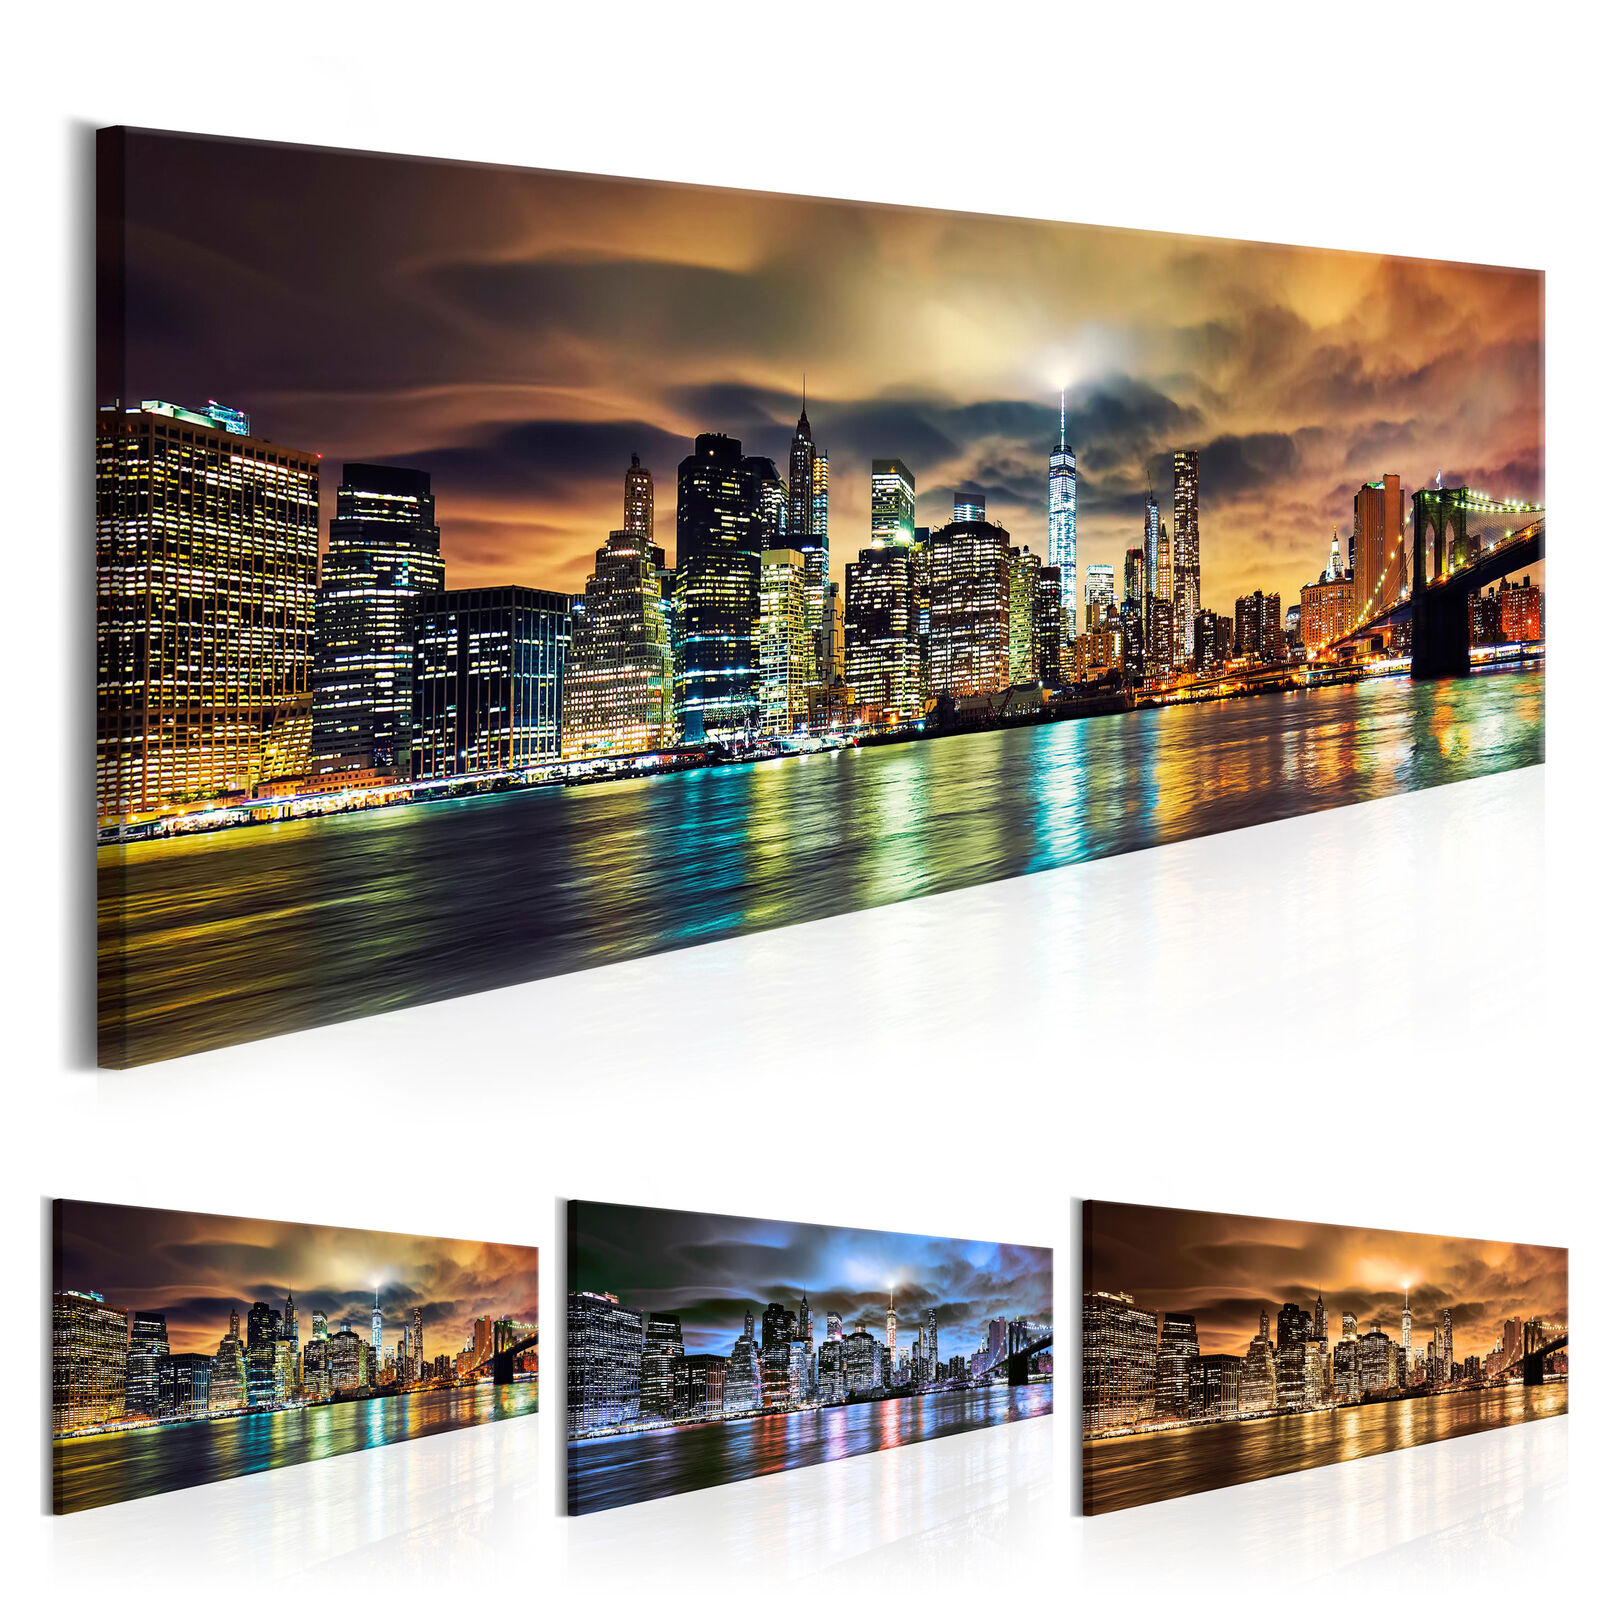 leinwand bilder xxl fertig aufgespannt bild new york stadt nacht d b 0085 b b eur 24 90. Black Bedroom Furniture Sets. Home Design Ideas